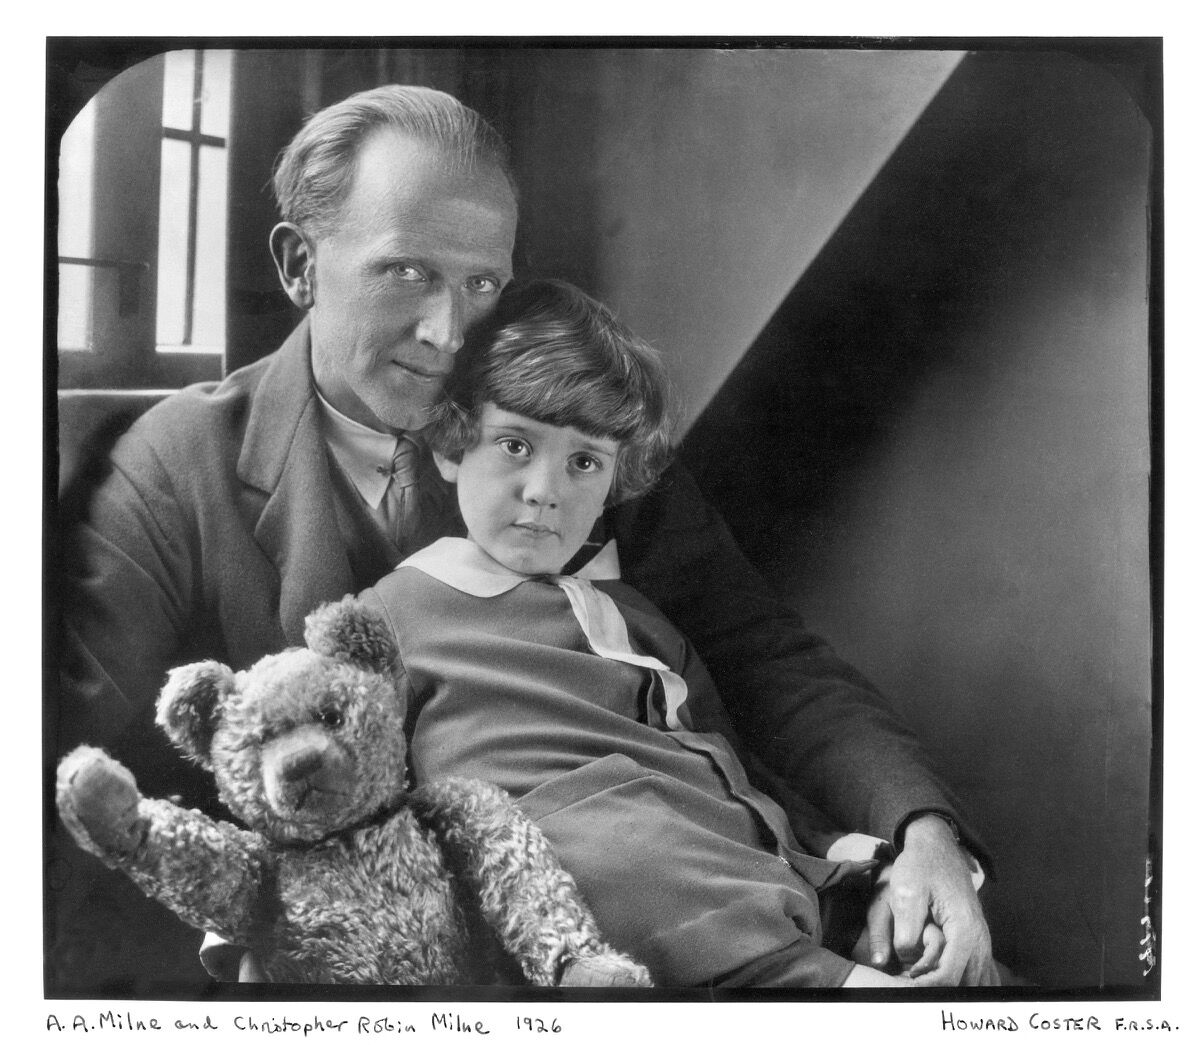 Howard Coster, A.A. Milne; Christopher robin Milne and Pooh Bear, 1926. © National Portrait Gallery, London.